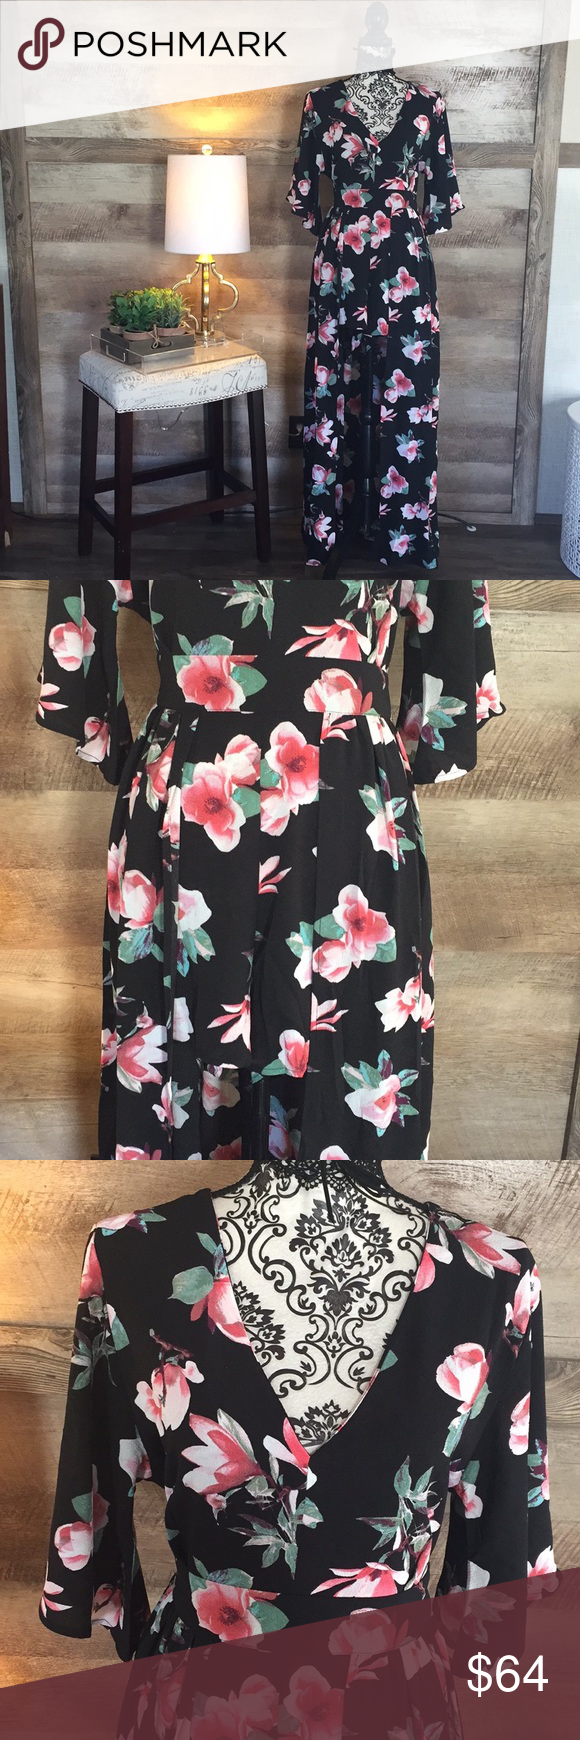 99bca5806bdb NWT Floral Maxi Dress w Built In Romper New with tags. Cutout back.